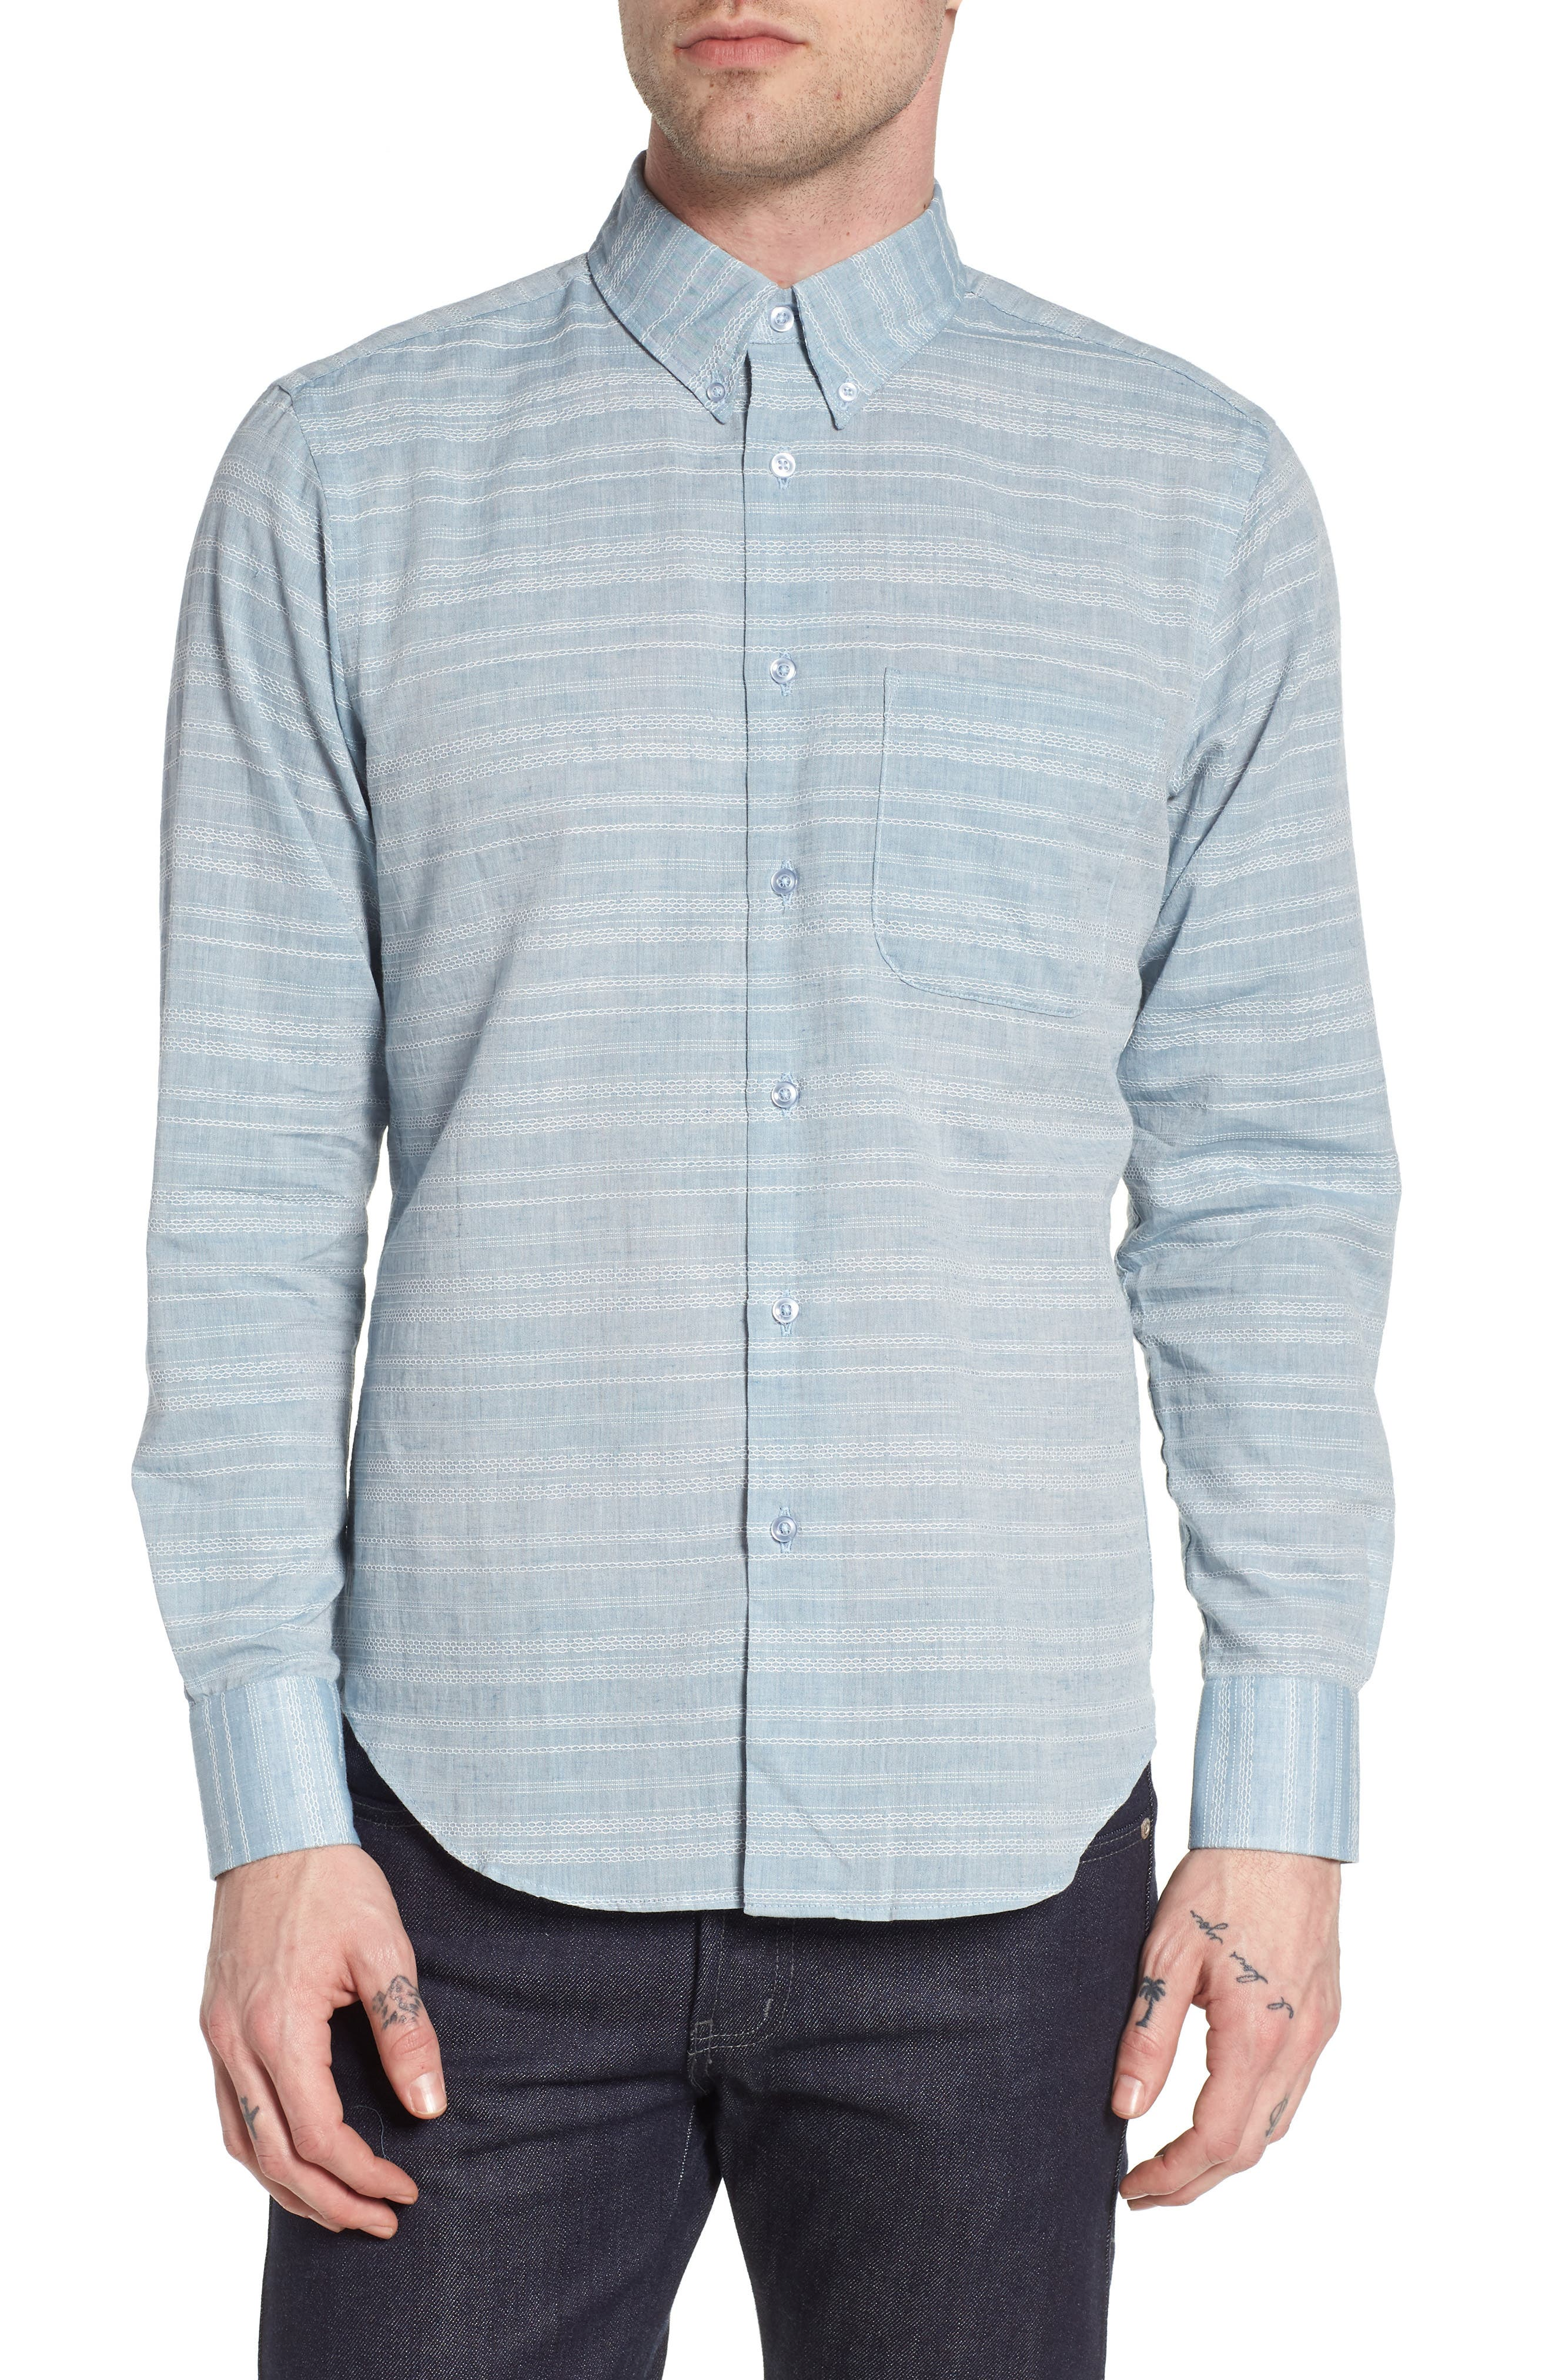 Naked & Famous Beehive Dobby Shirt,                         Main,                         color, Blue